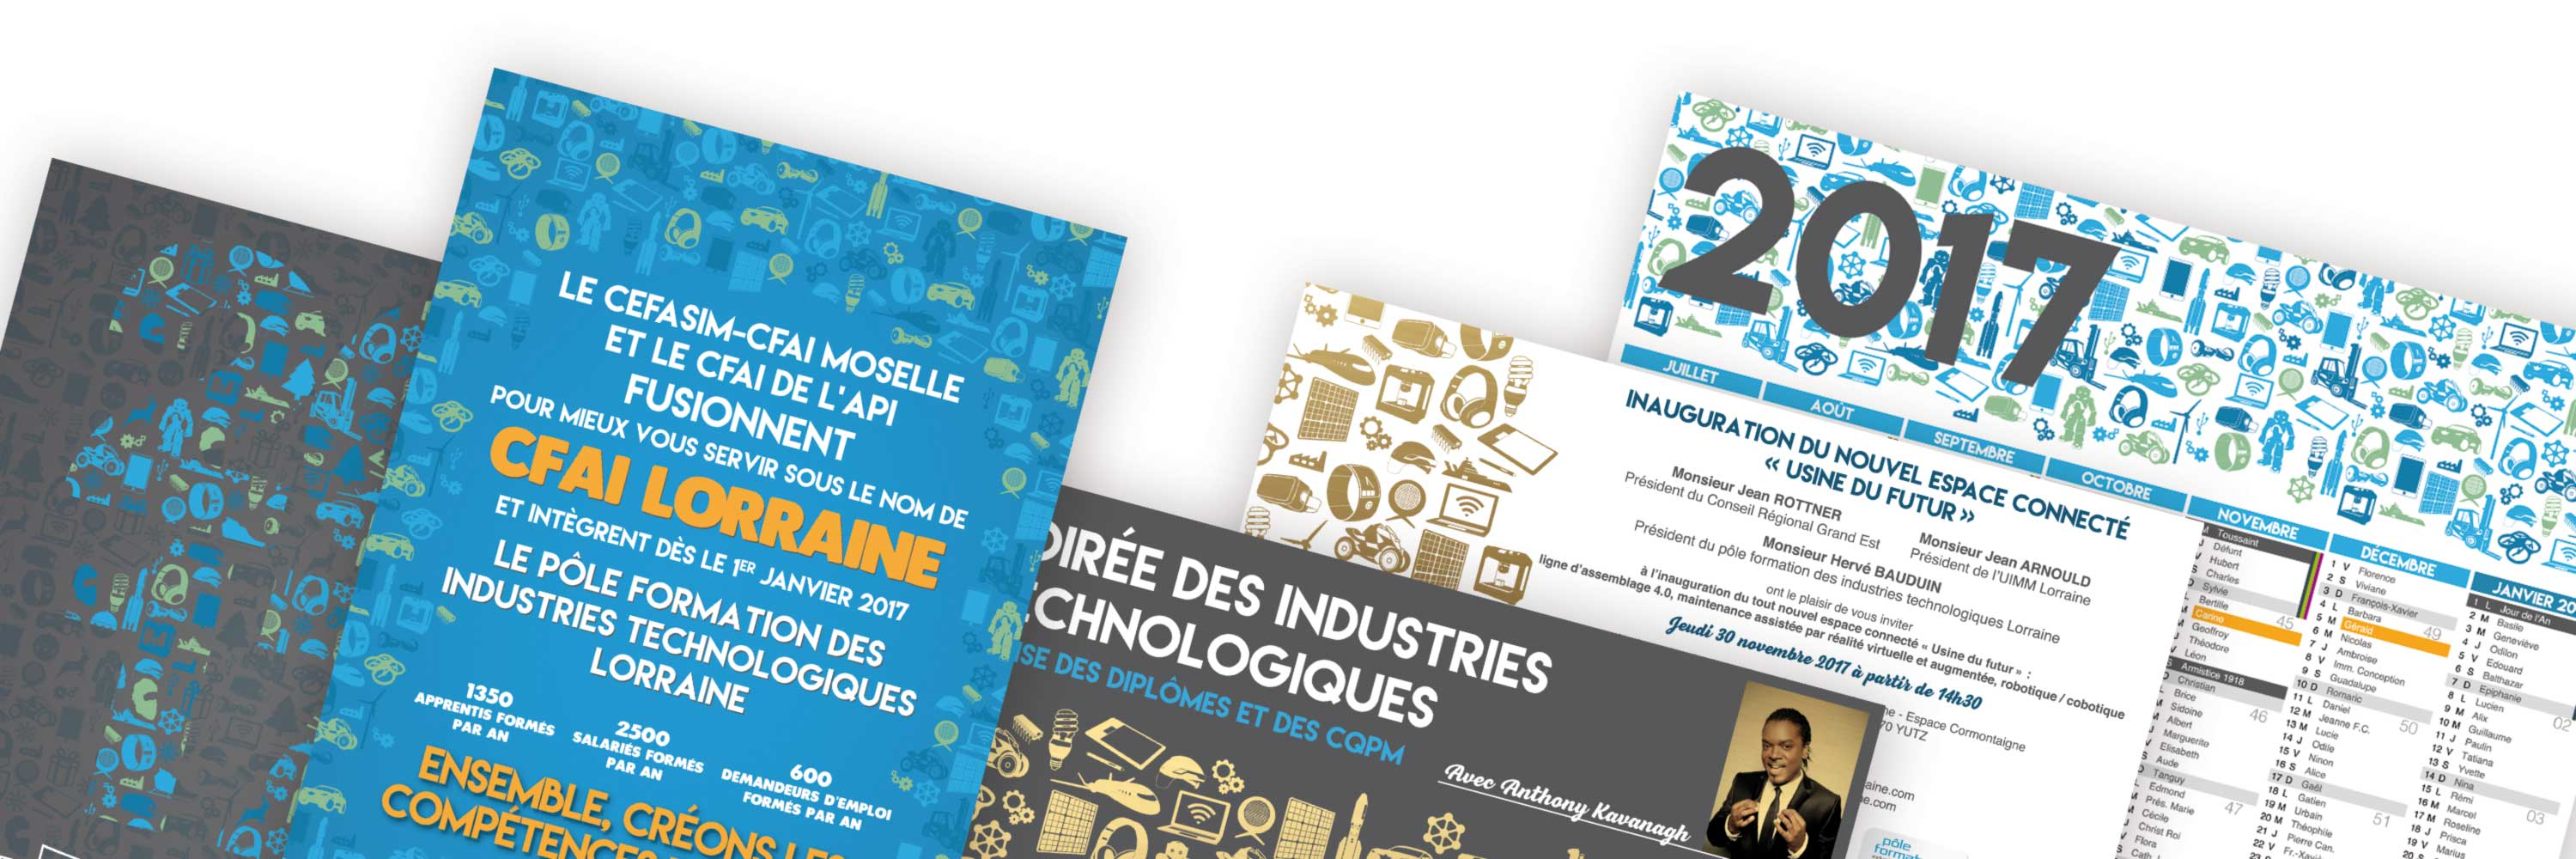 graphiste-charte-pole-formation-industries-lorraine-4